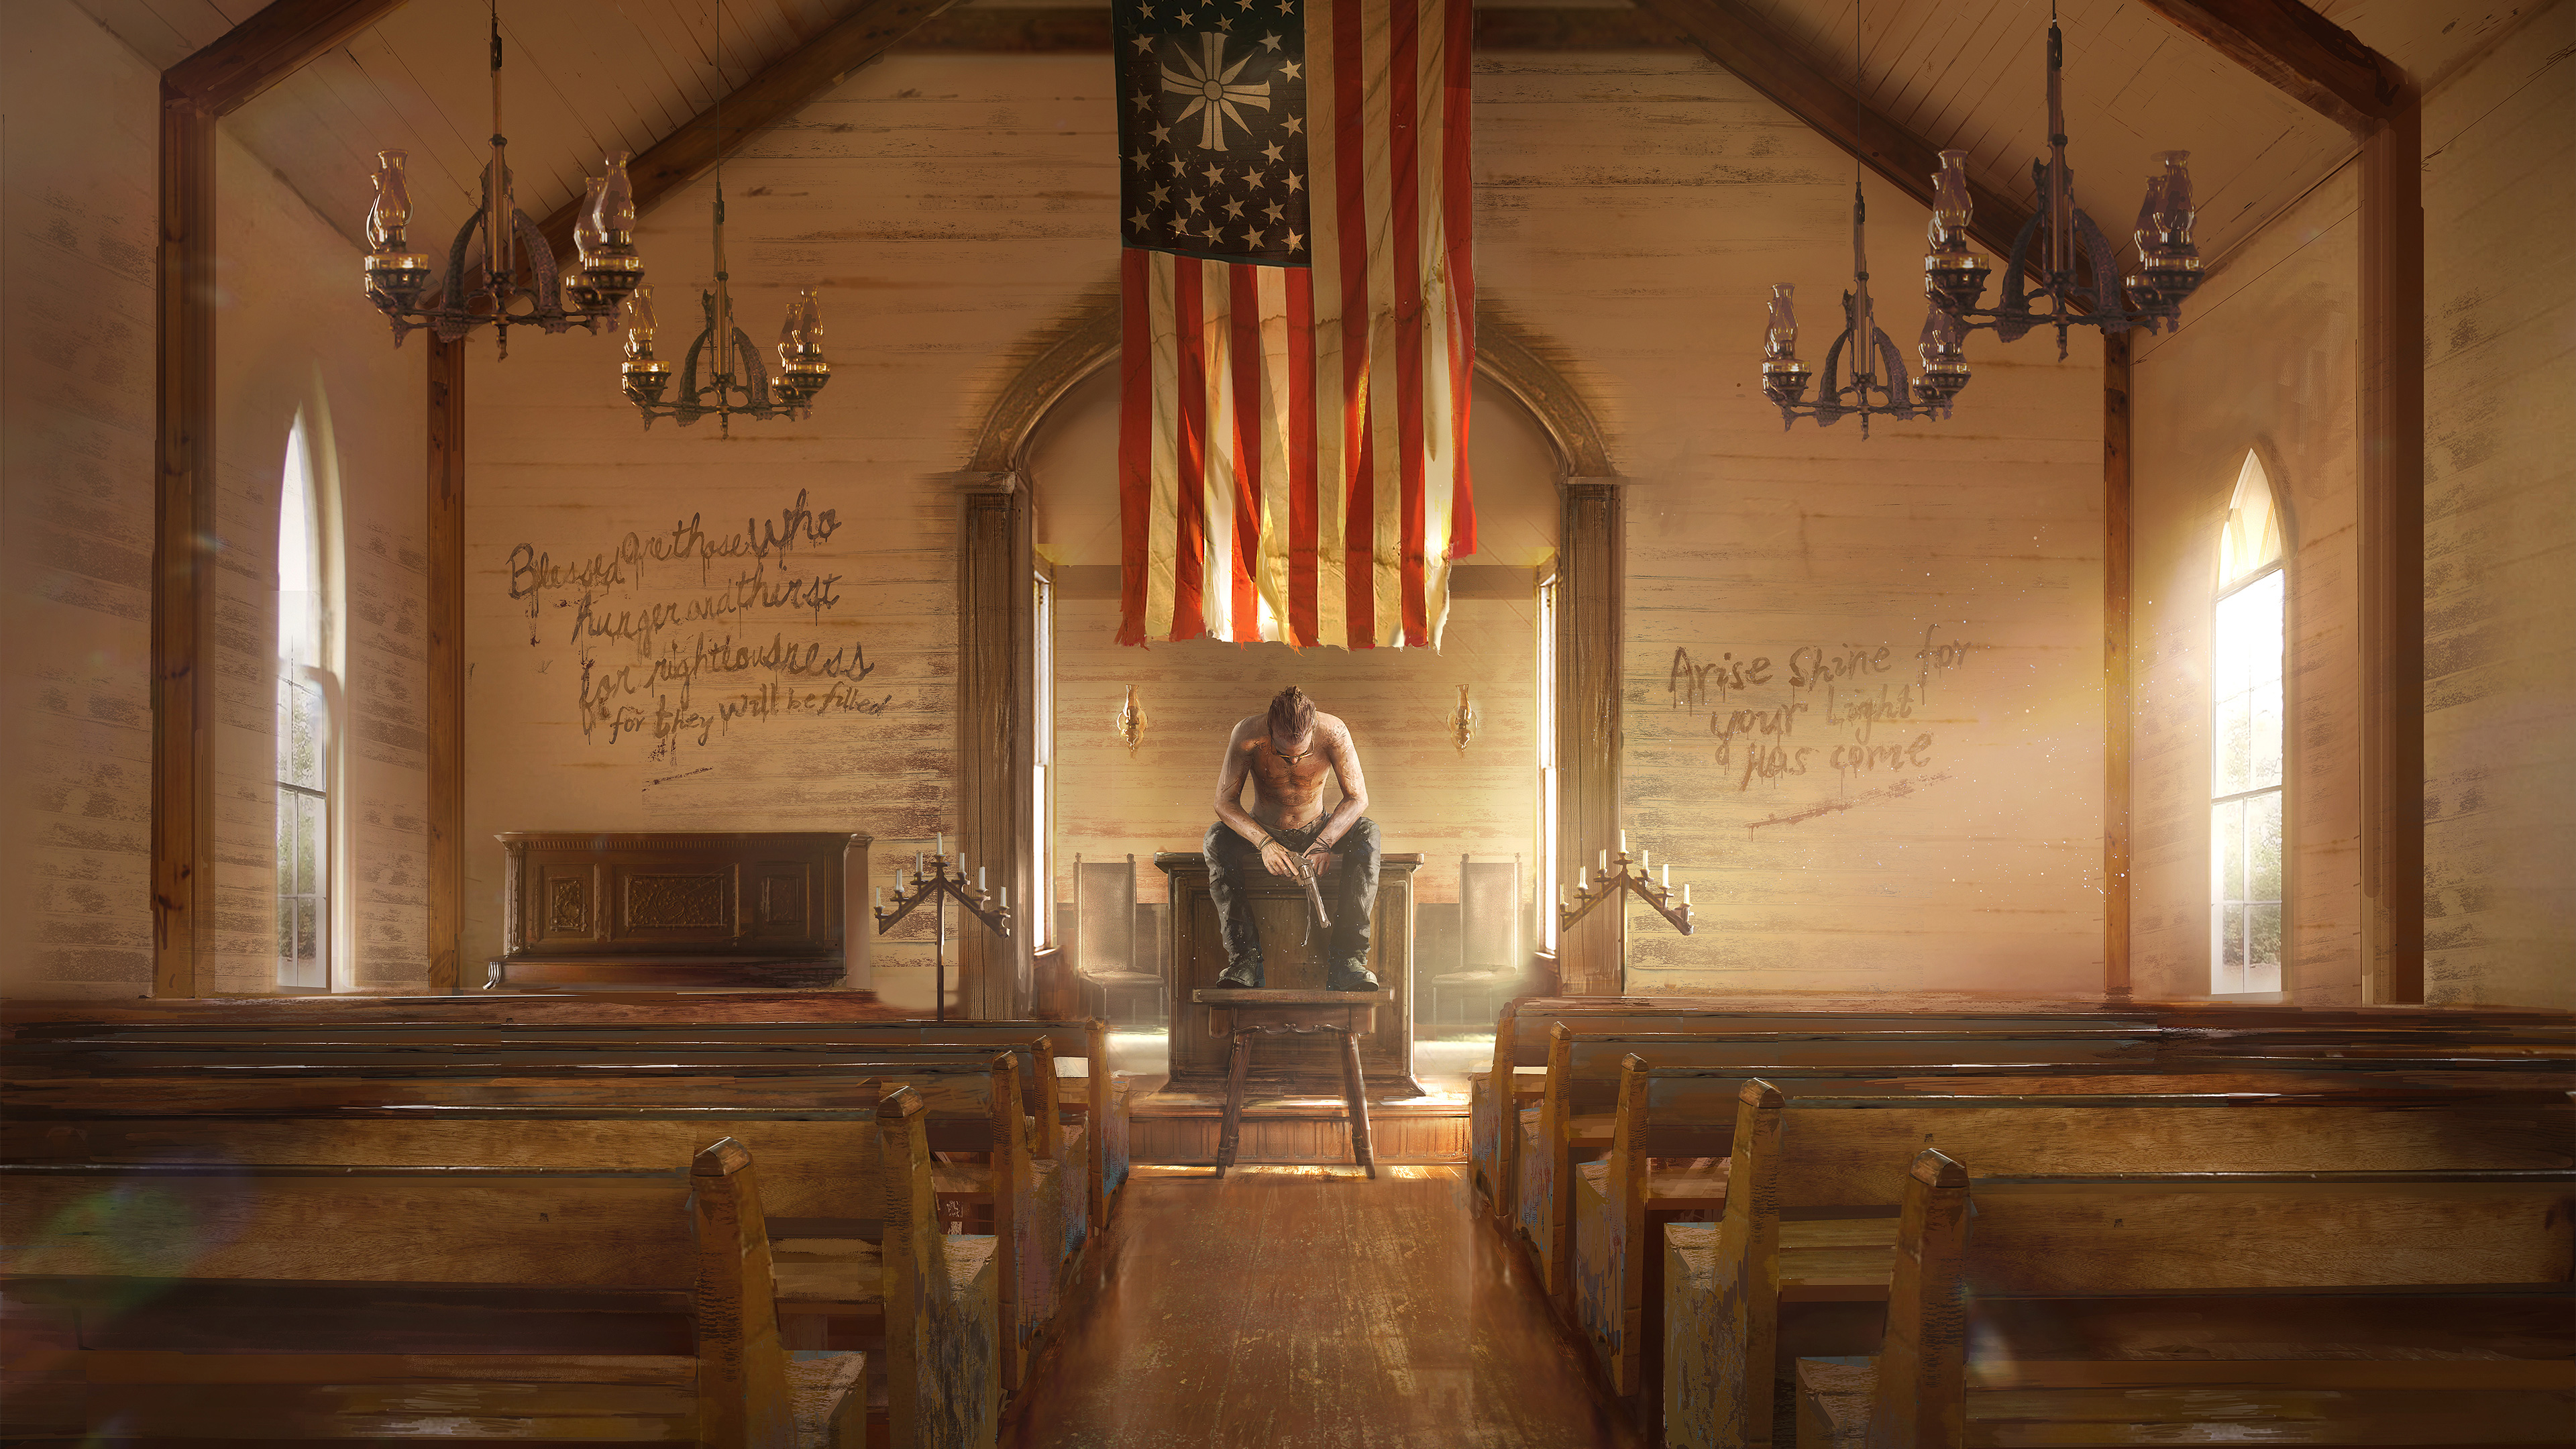 far cry 5 hd wallpaper 4k